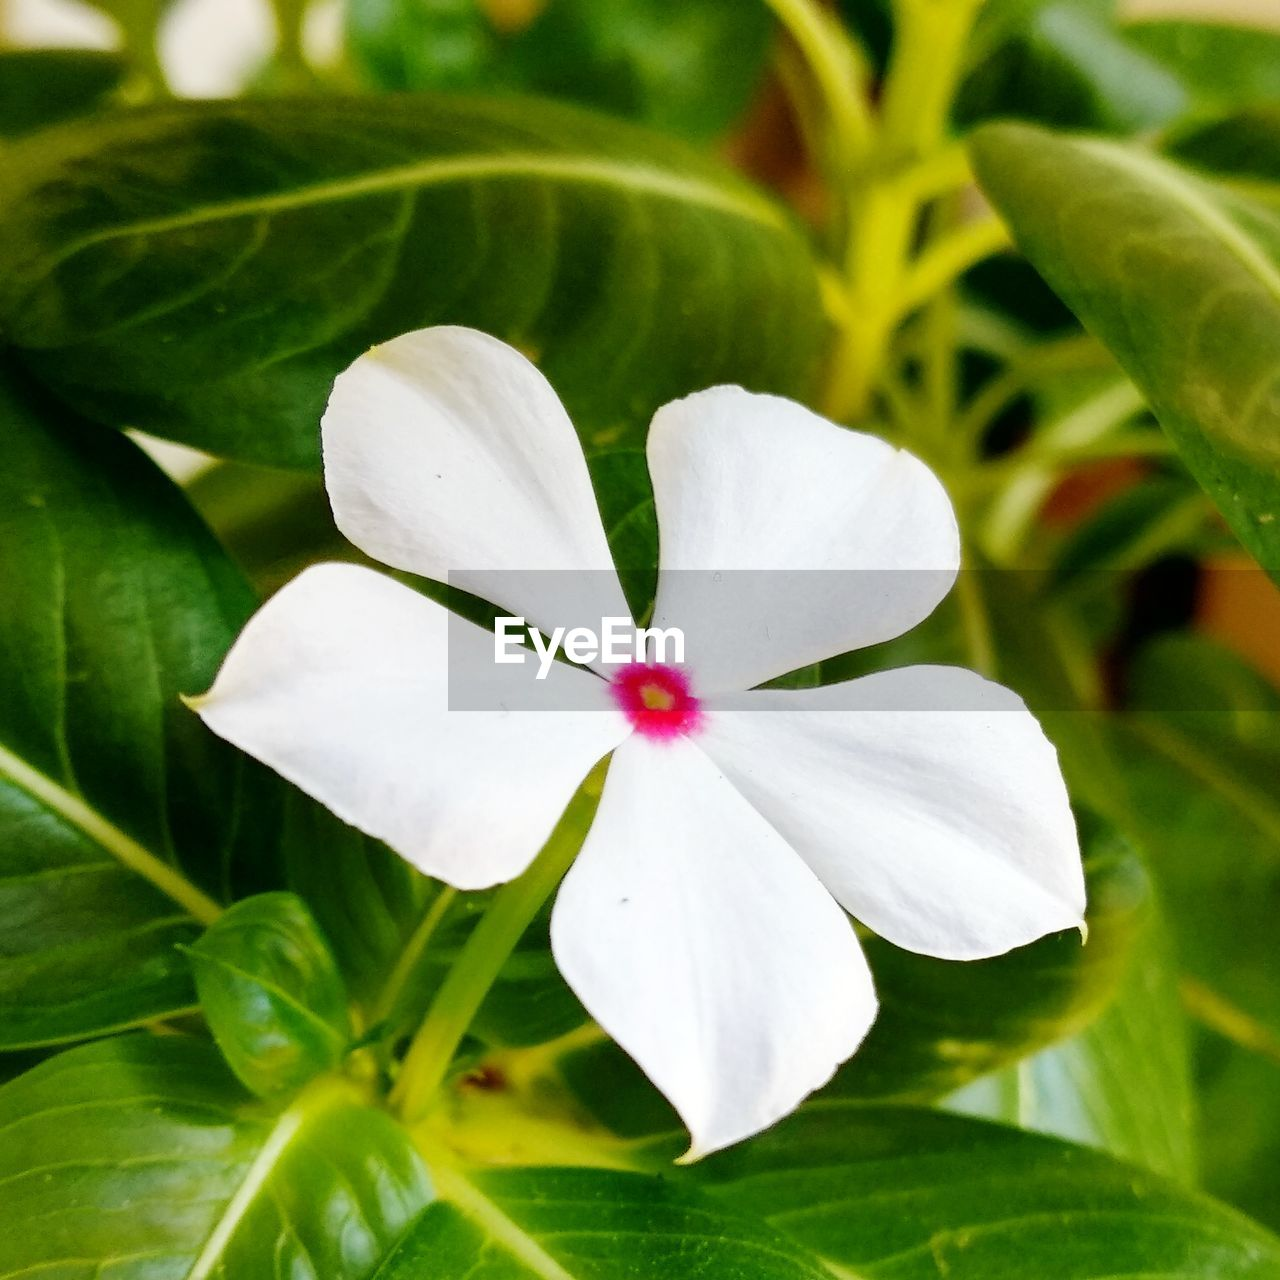 flowering plant, flower, beauty in nature, plant, growth, petal, white color, fragility, freshness, vulnerability, inflorescence, flower head, close-up, plant part, leaf, green color, no people, day, nature, focus on foreground, outdoors